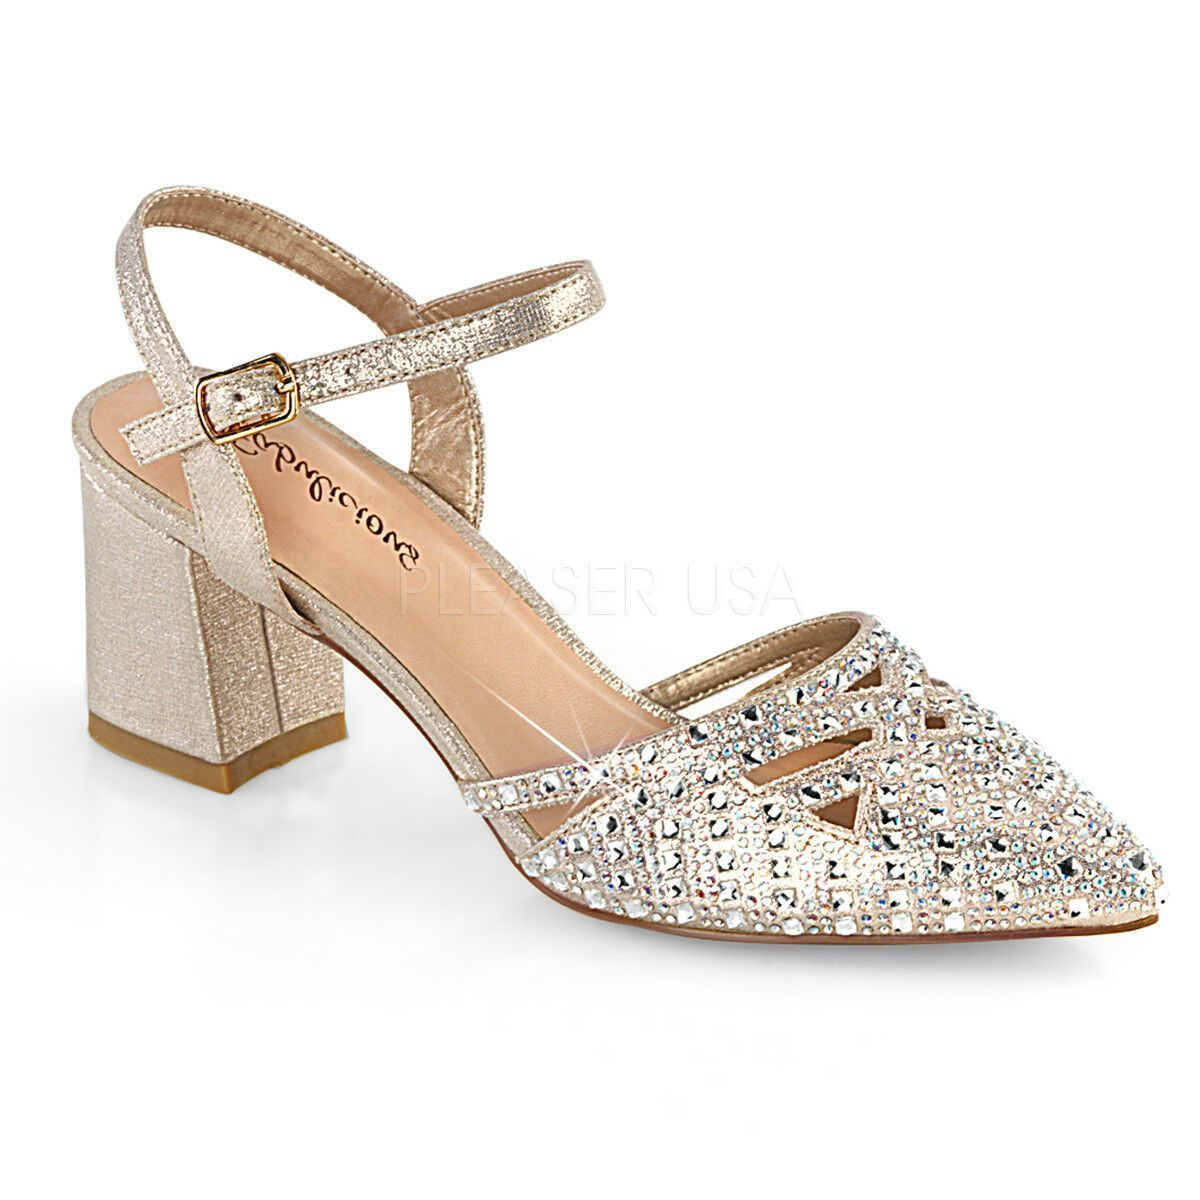 Gold Indian Bollywood Rhinestone Shoes Low Wedding Heels Womans size 9 10 11 12 ...#bollywood #gold #heels #indian #rhinestone #shoes #size #wedding #womans